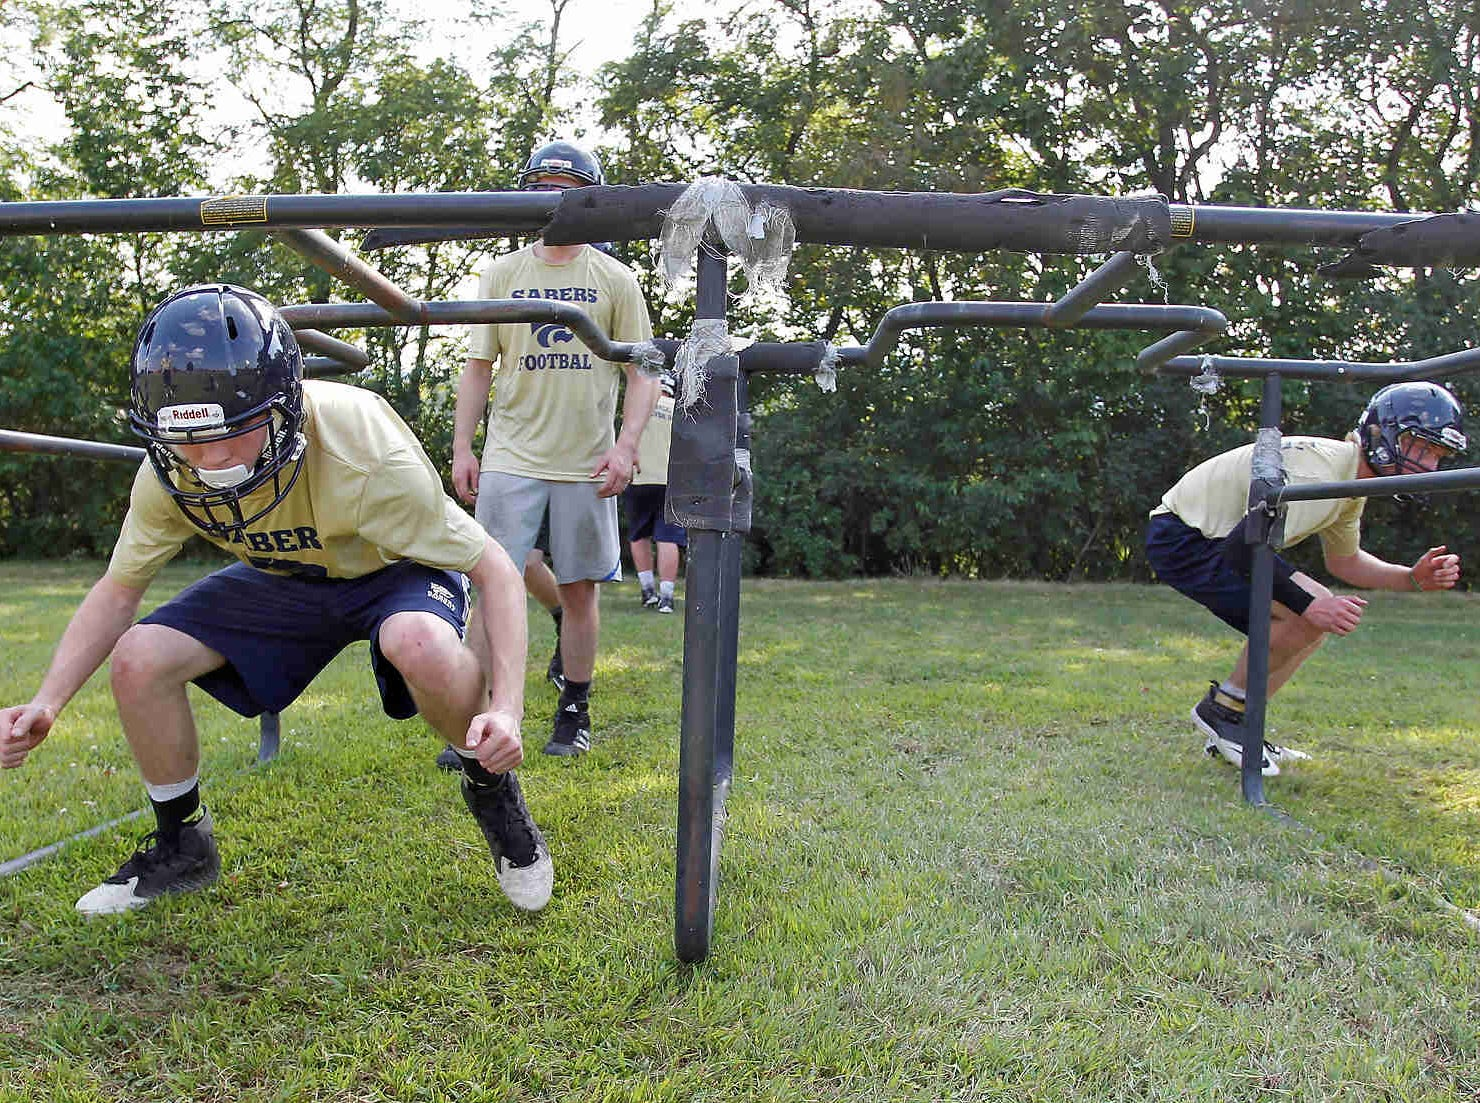 First day of football practice at Susquehanna Valley High School. Monday, August 17, 2015.